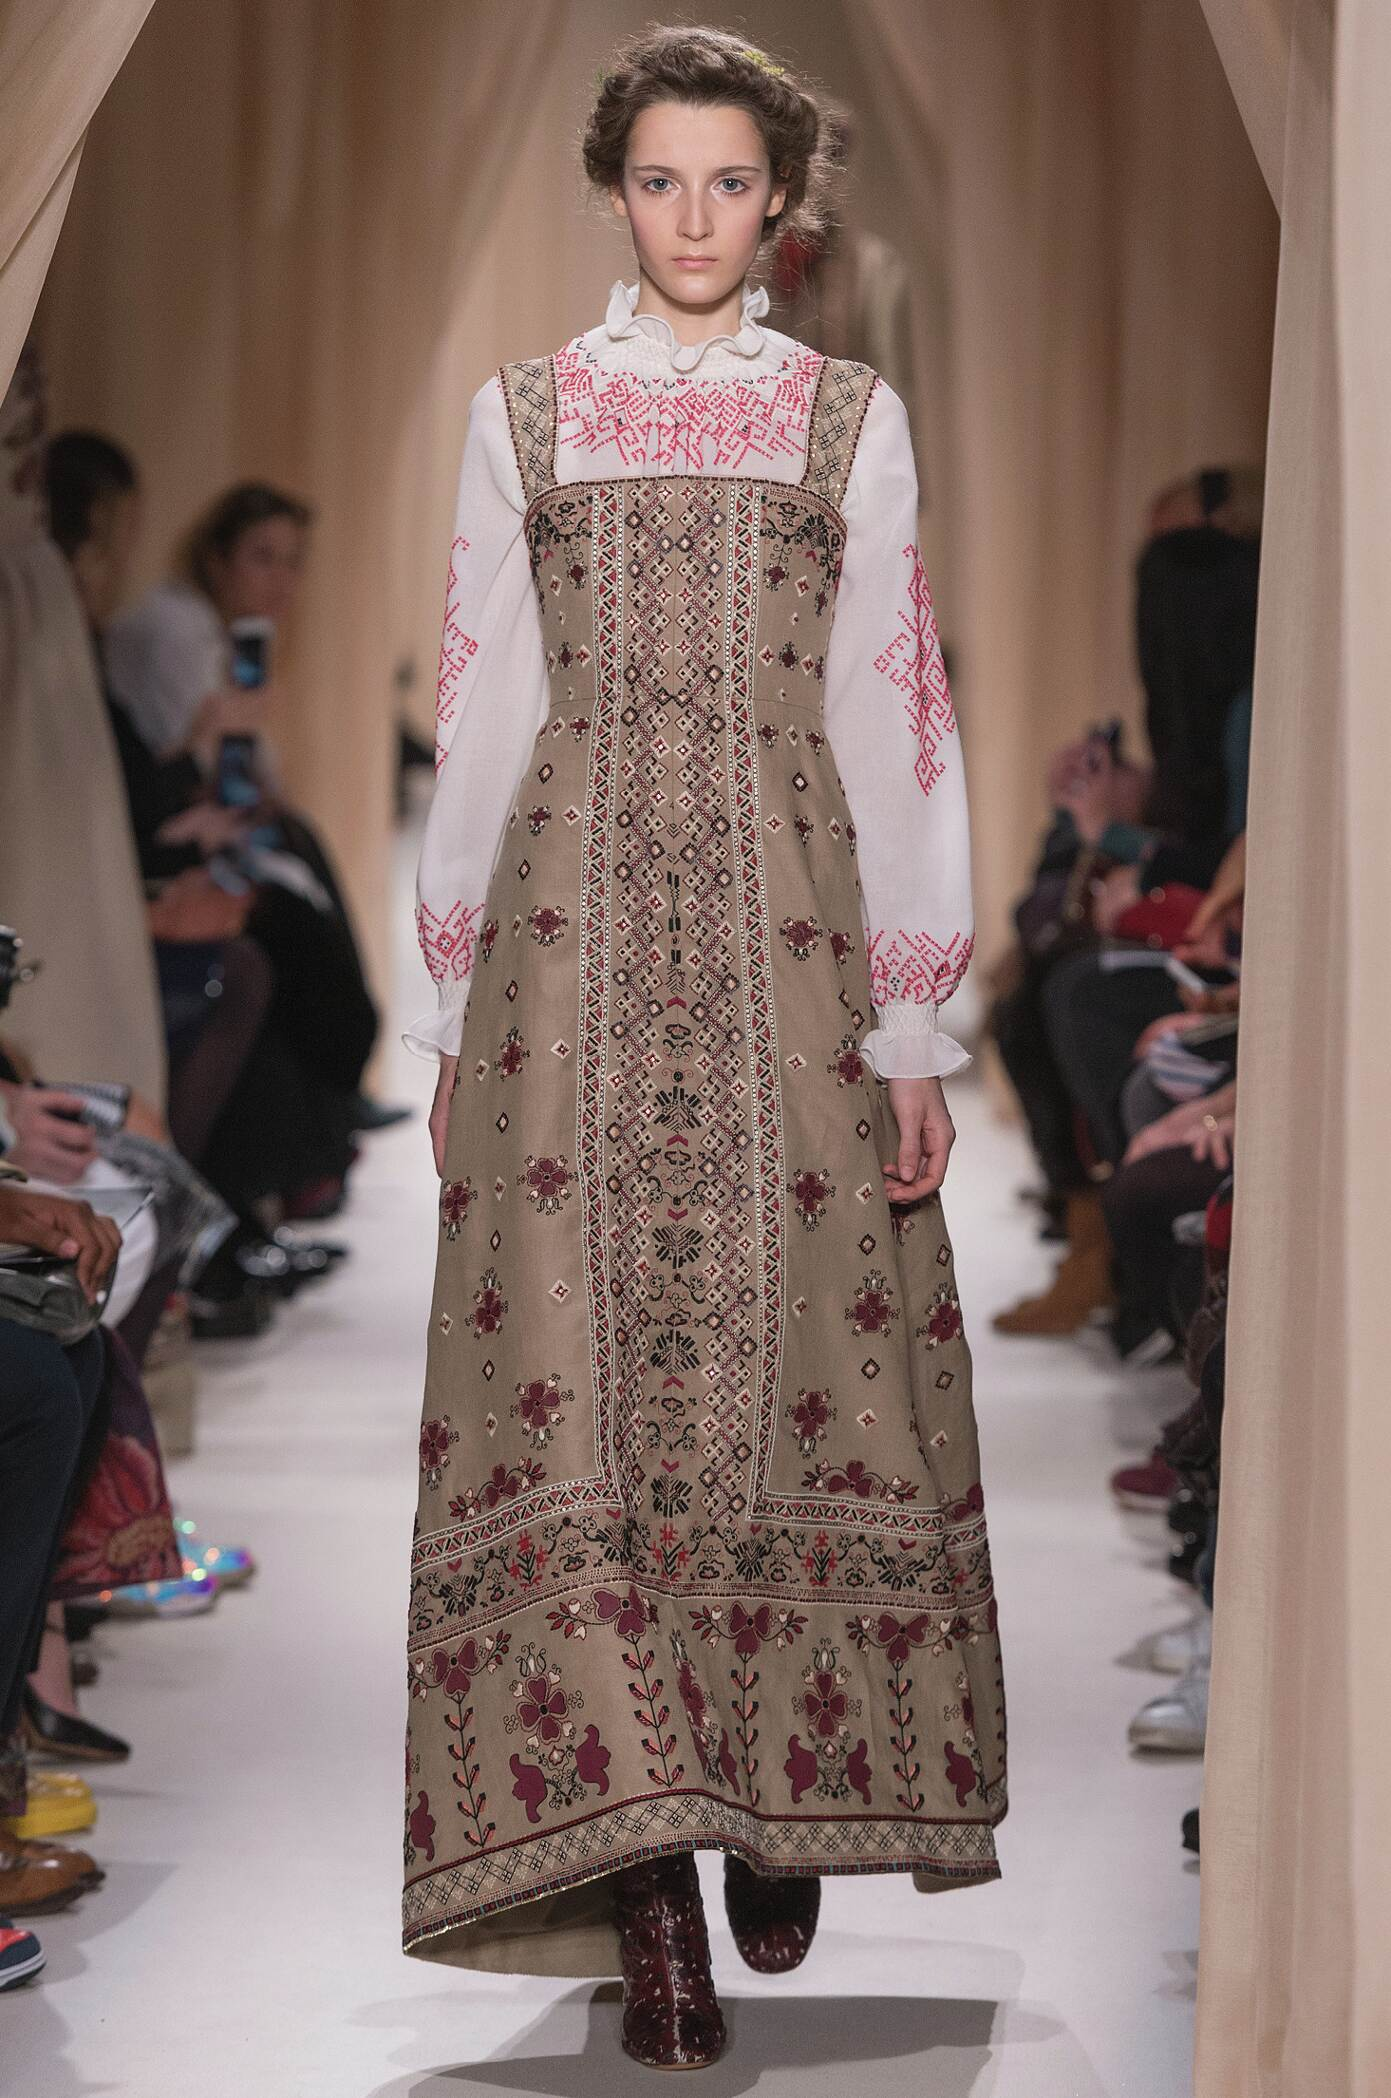 Valentino Haute Couture Spring Summer 2015 Women's Collection Paris Fashion Week Fashion Show